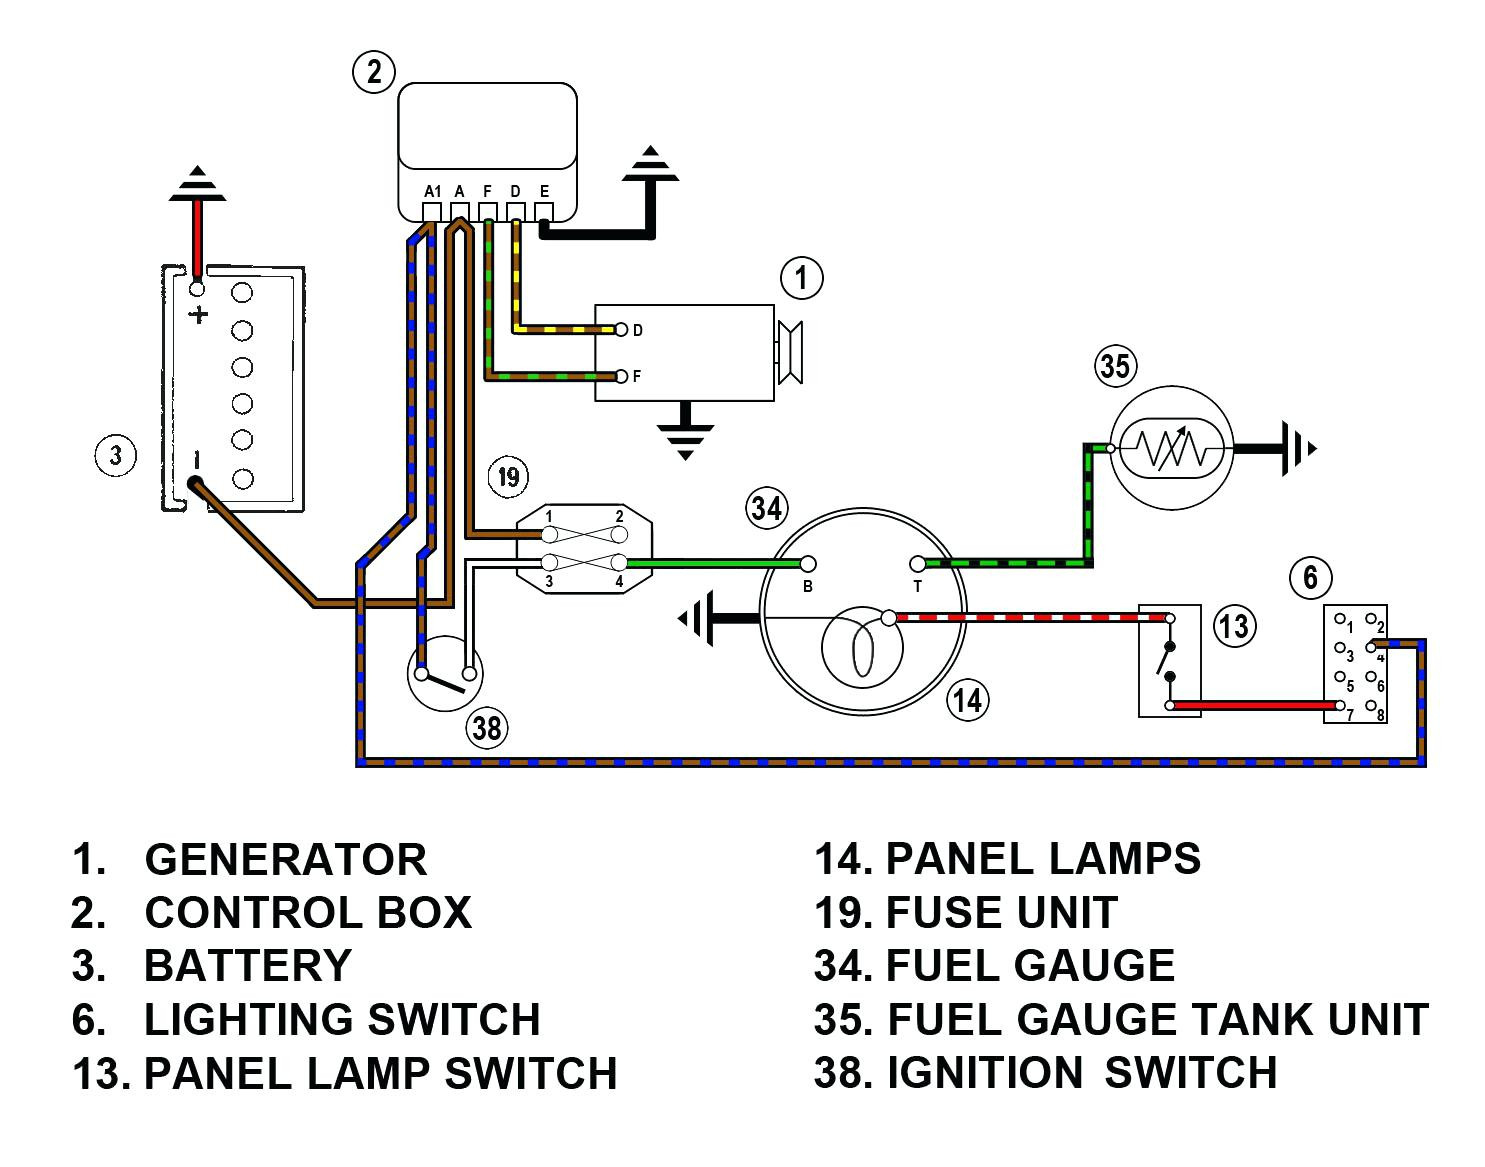 1973 vw fuel sending unit wiring electrical wiring diagram house u2022 rh universalservices co